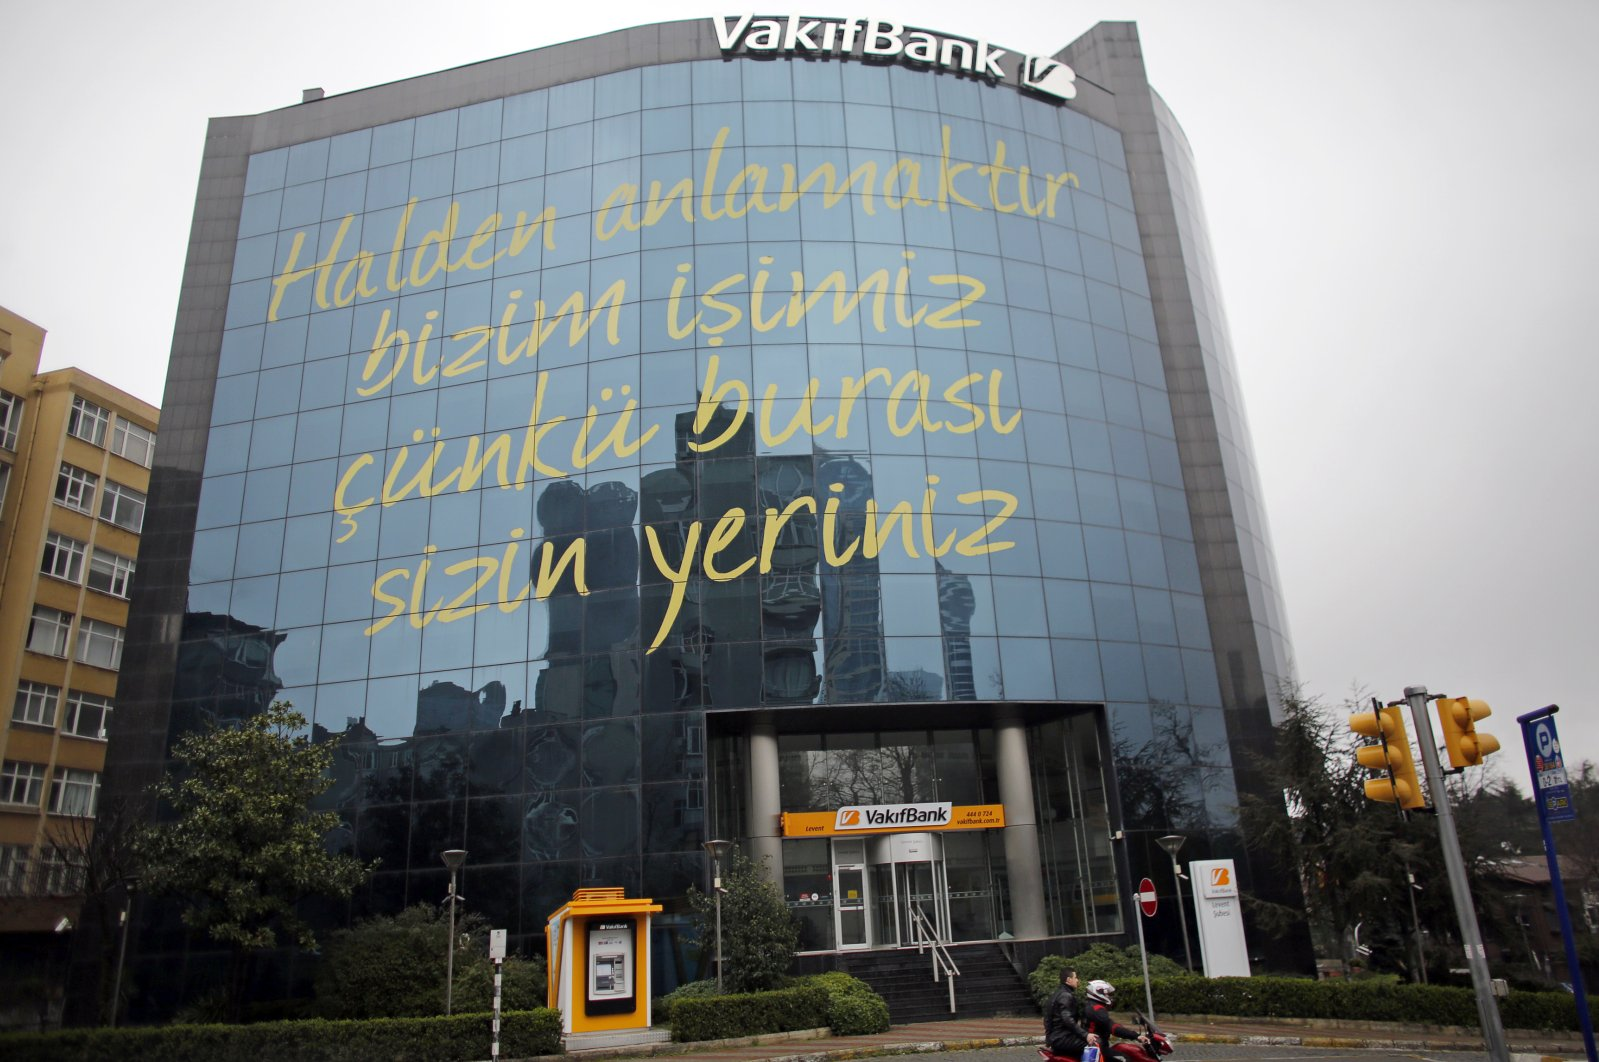 The headquarters of state-run bank Vakifbank is seen in Istanbul. (Reuters Photo)